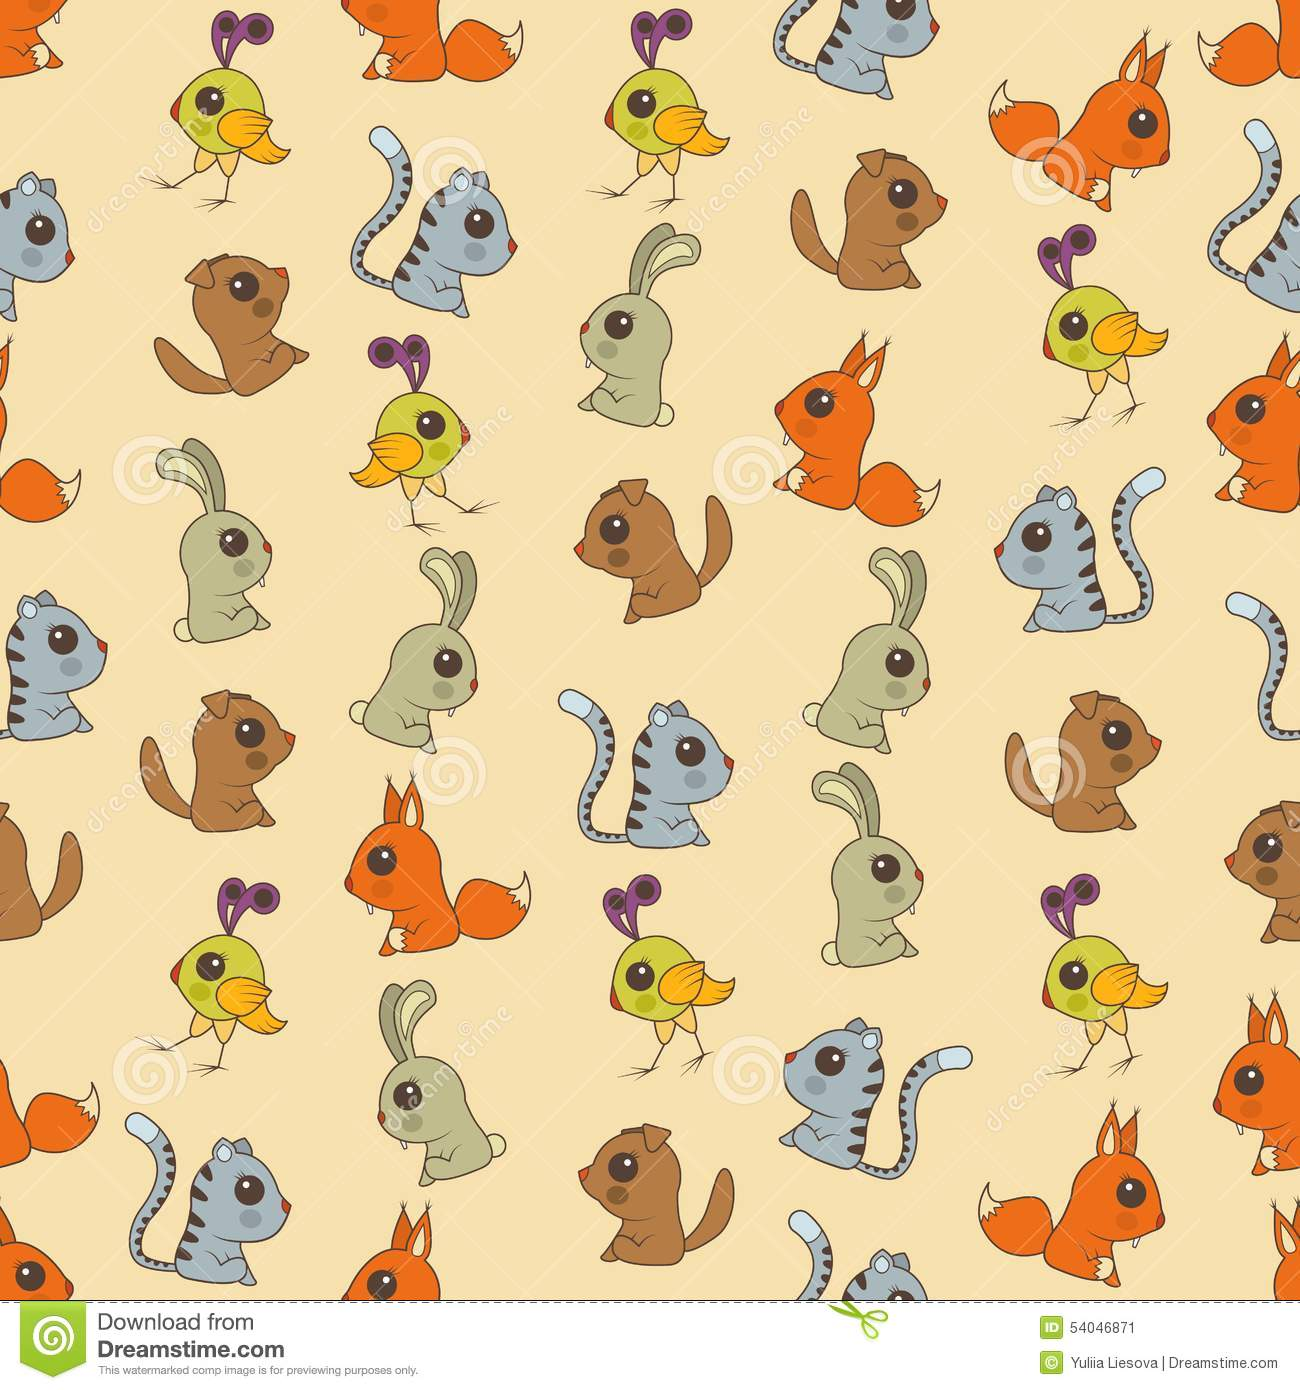 Seamless colorful background made of cartoons of cute baby anim seamless colorful background made of cartoons of cute baby anim voltagebd Images